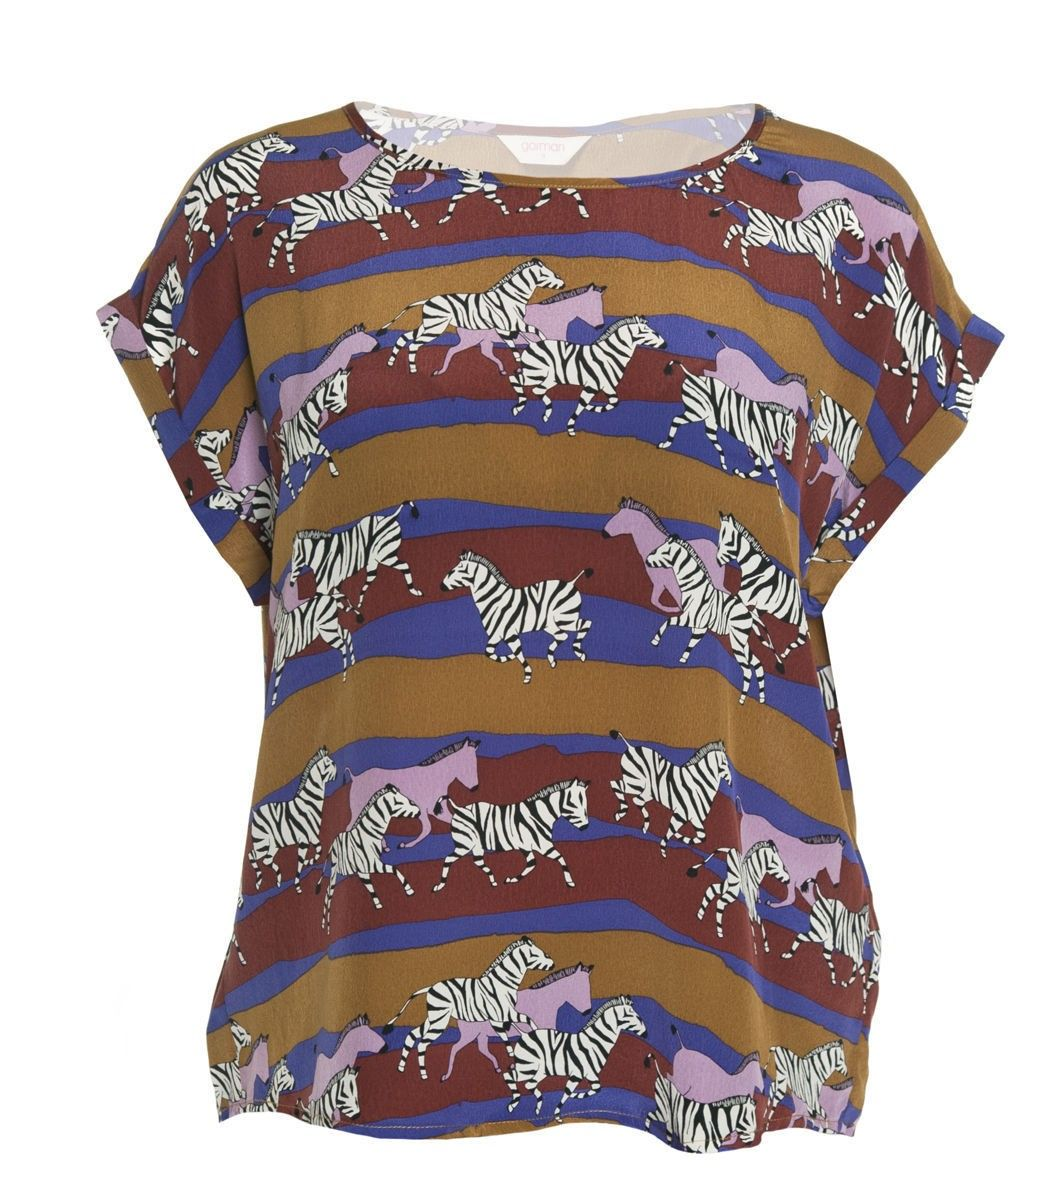 Emily the Zebra top by Gorman. Gorgeous box pleat on the back.